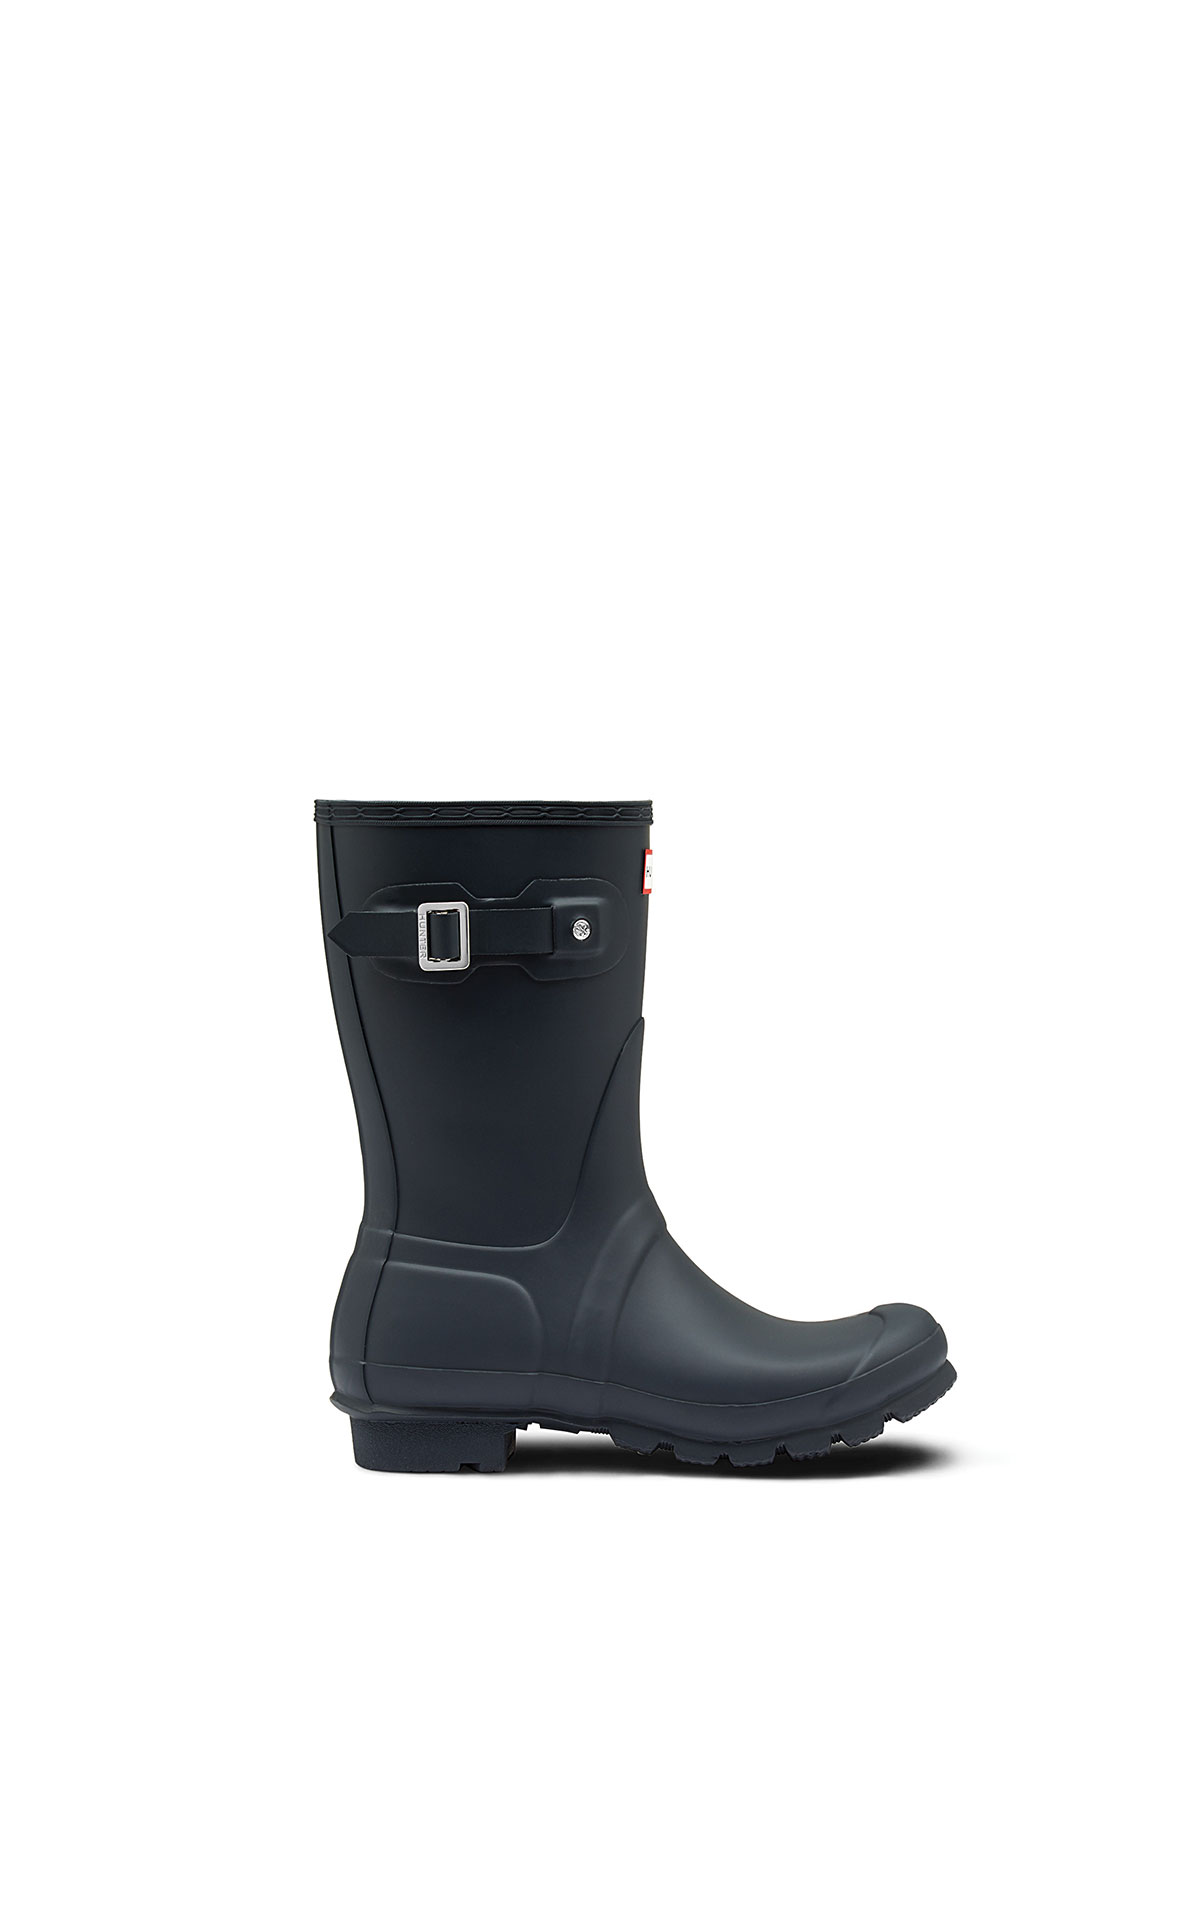 Hunter Women's original short boot from Bicester Village